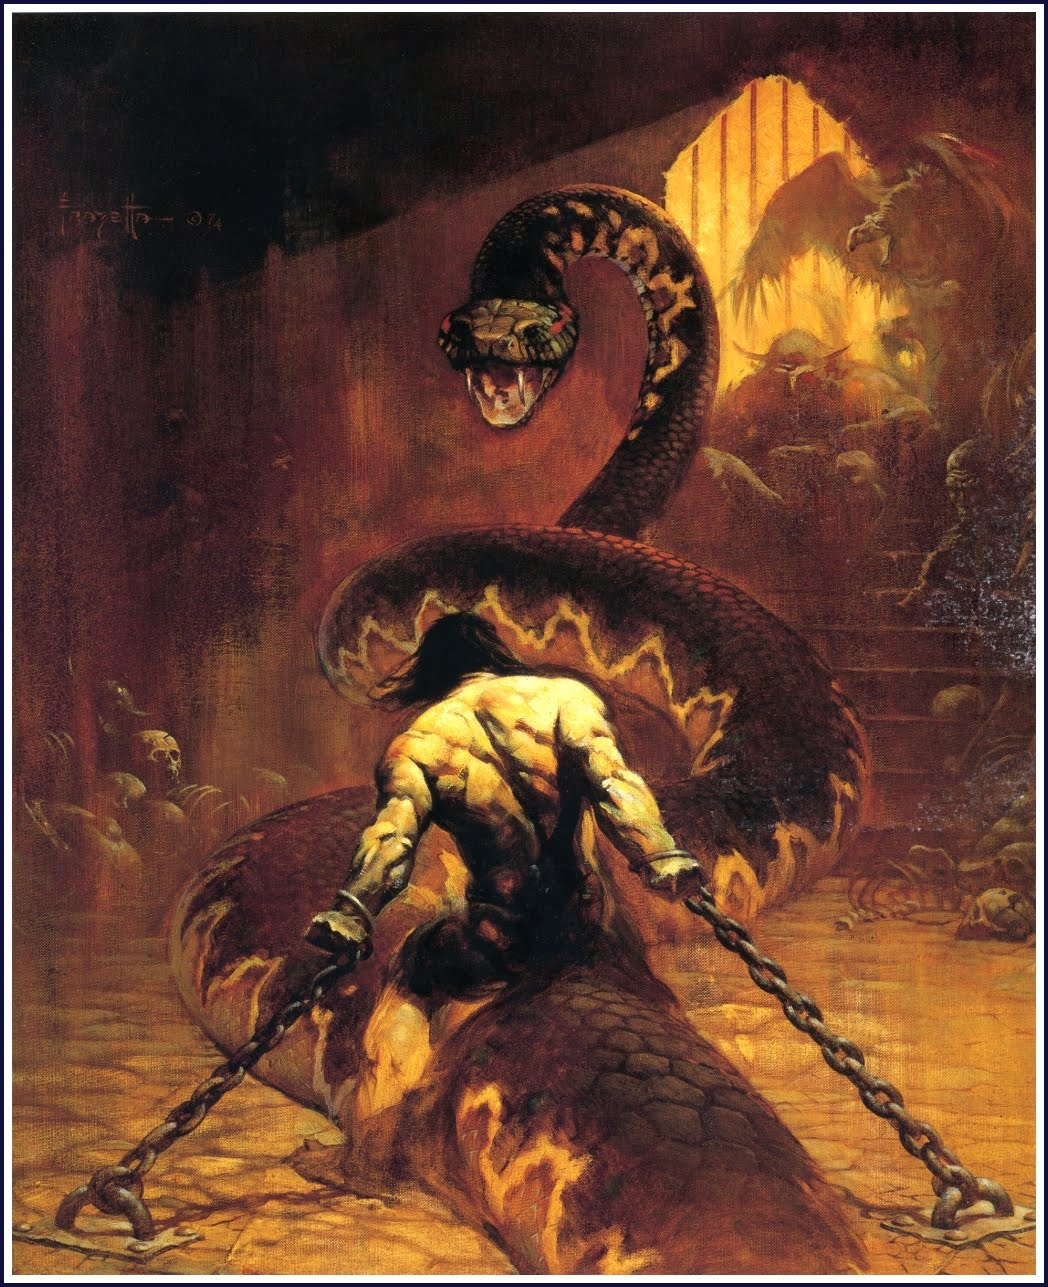 Conan the Usuper - by Frank Frazetta